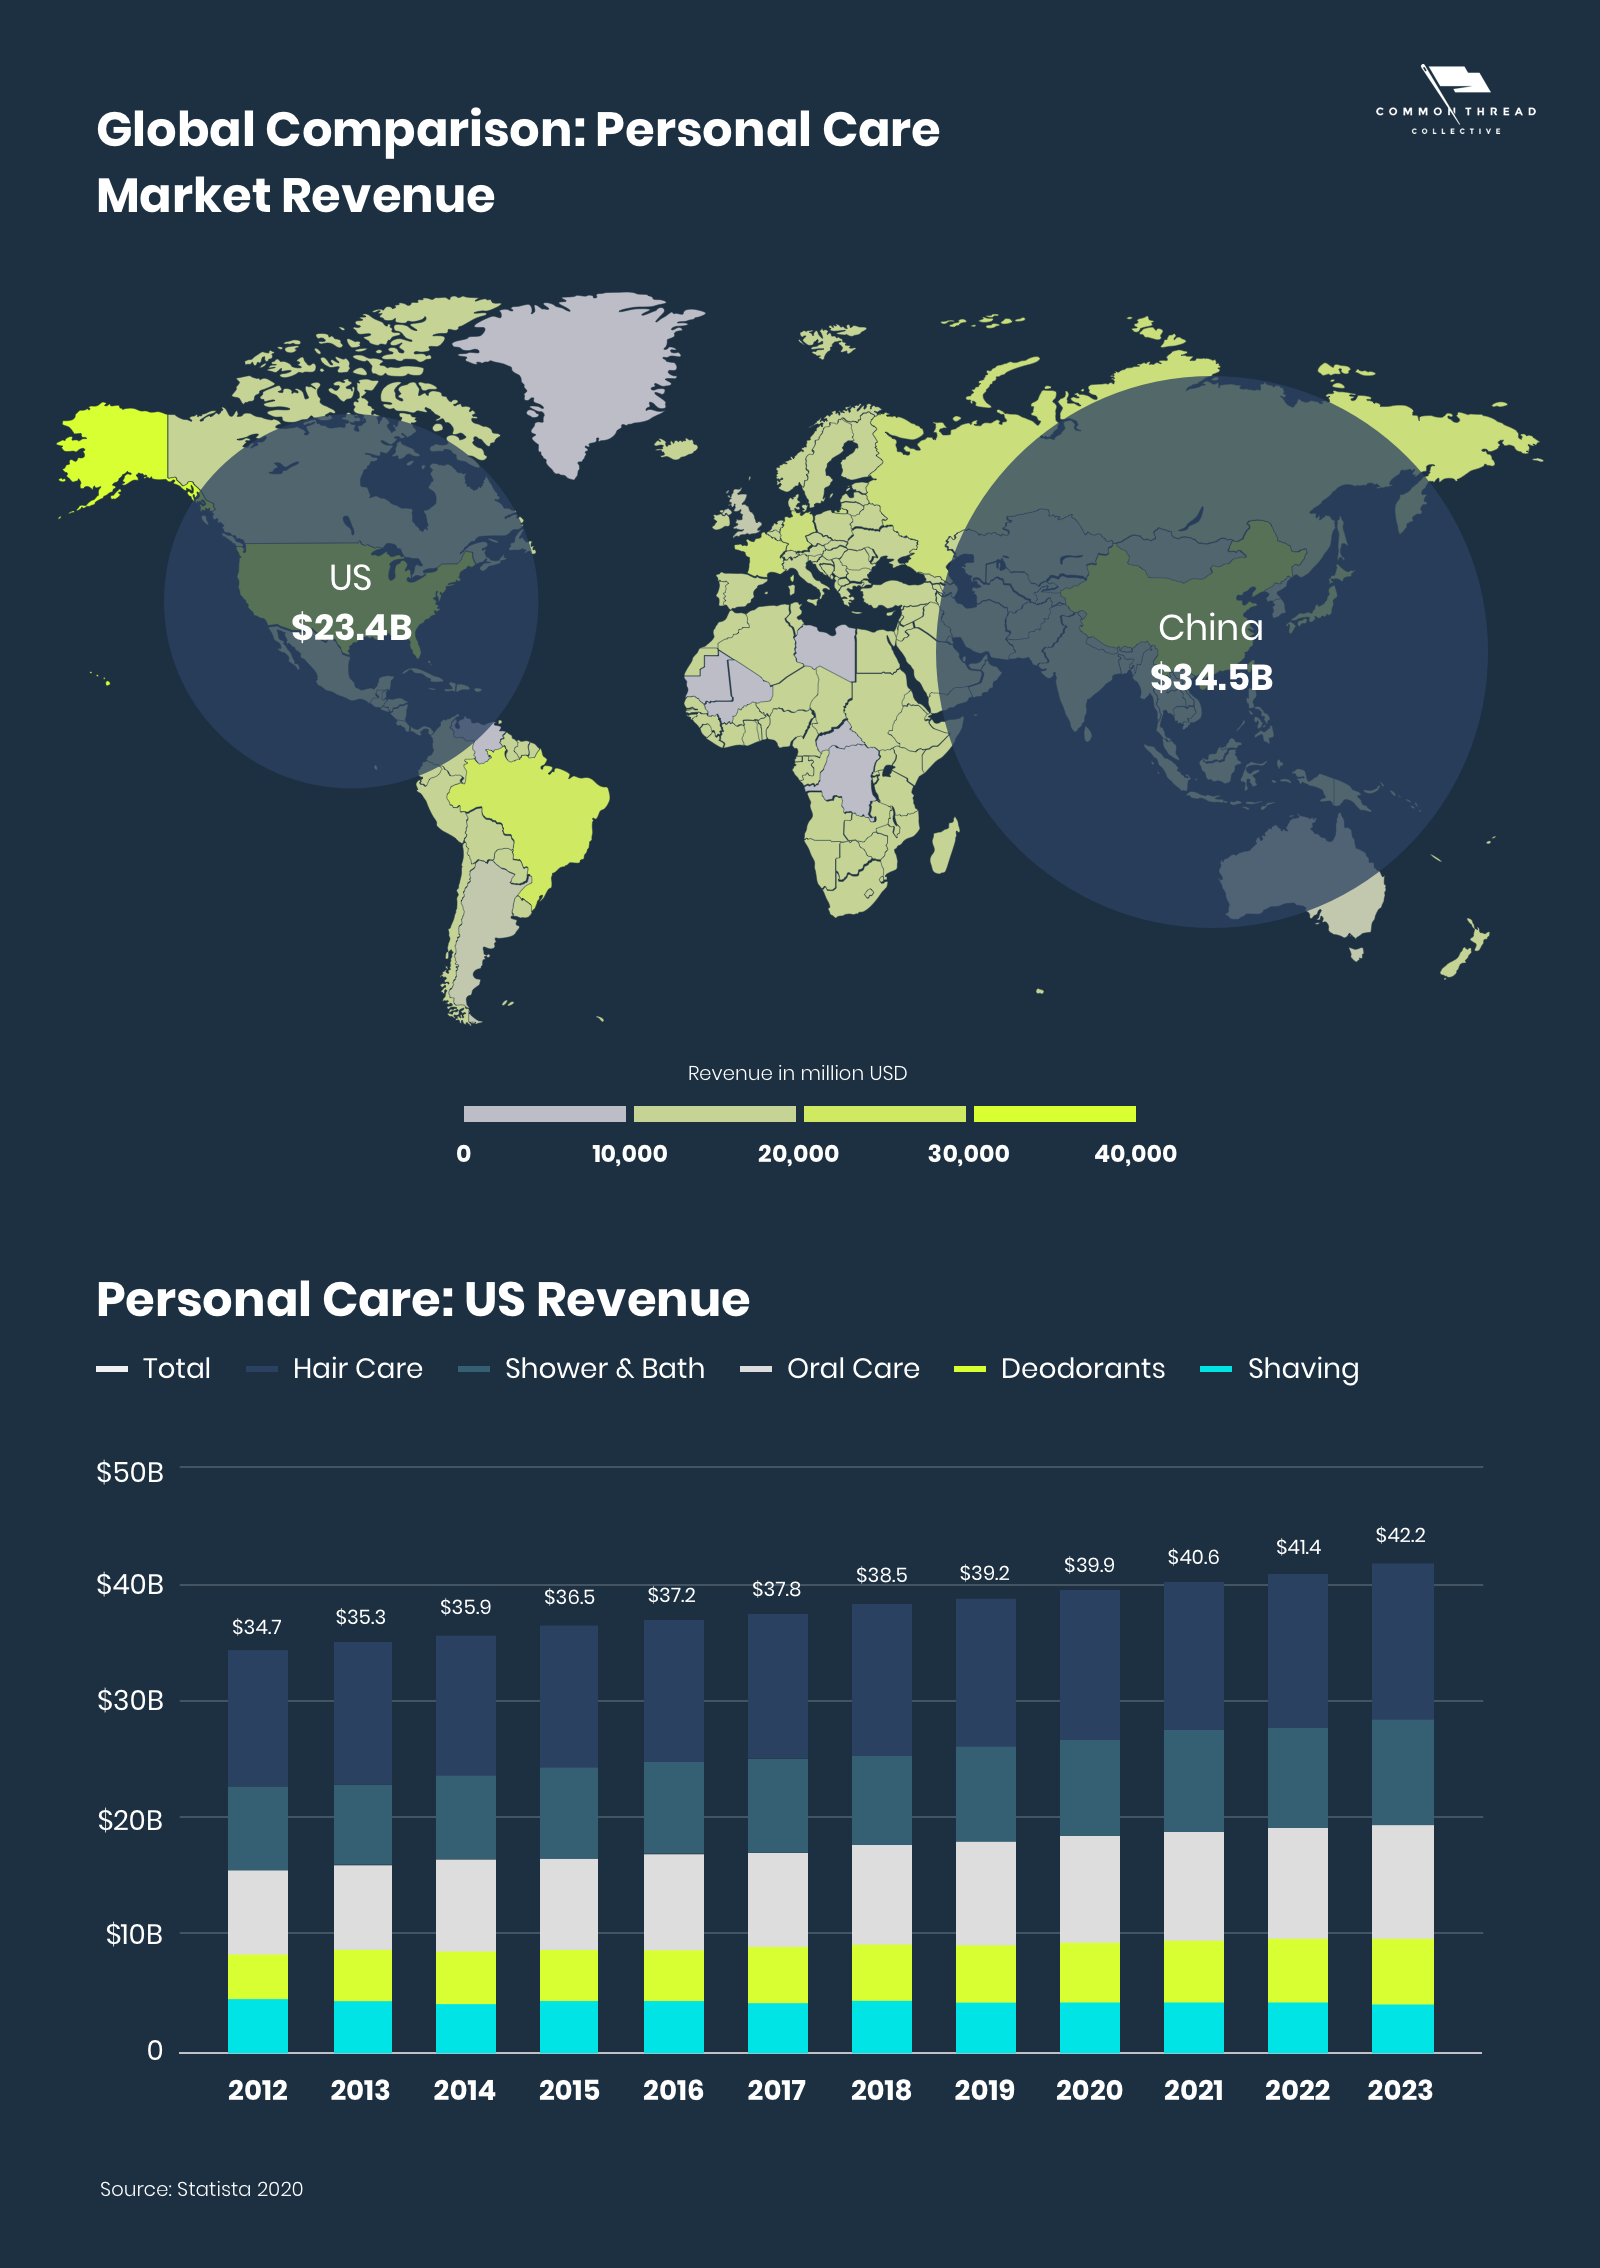 Global Comparison and Personal Care Market Revenue in the US